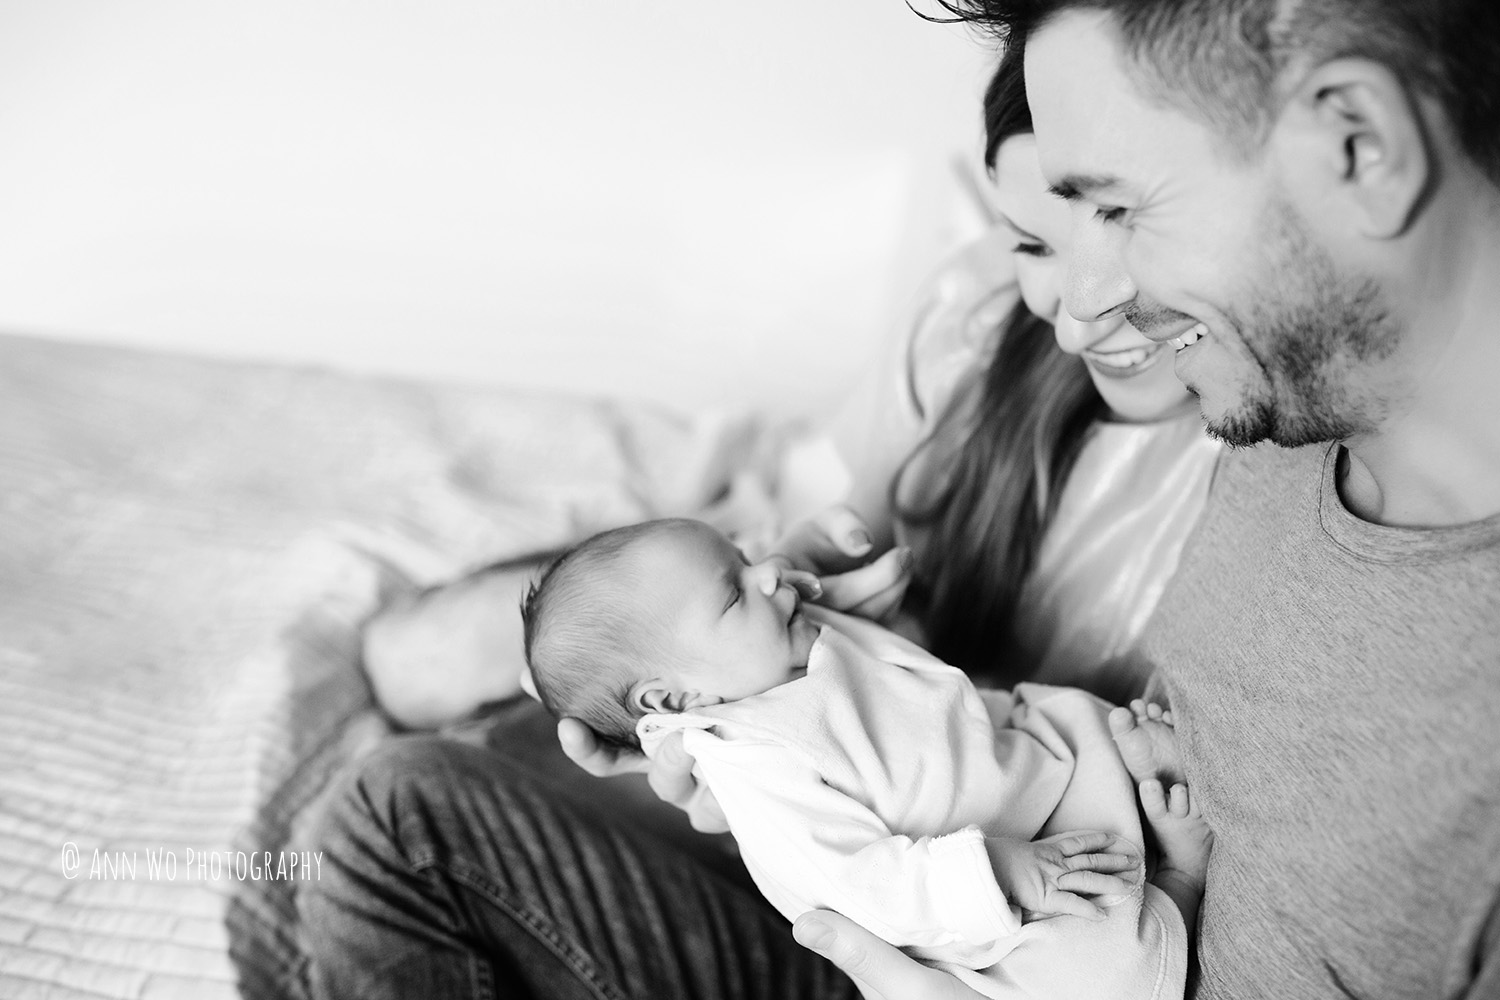 newborn-baby-photography-london-lifestyle-ann-wo-034.JPG